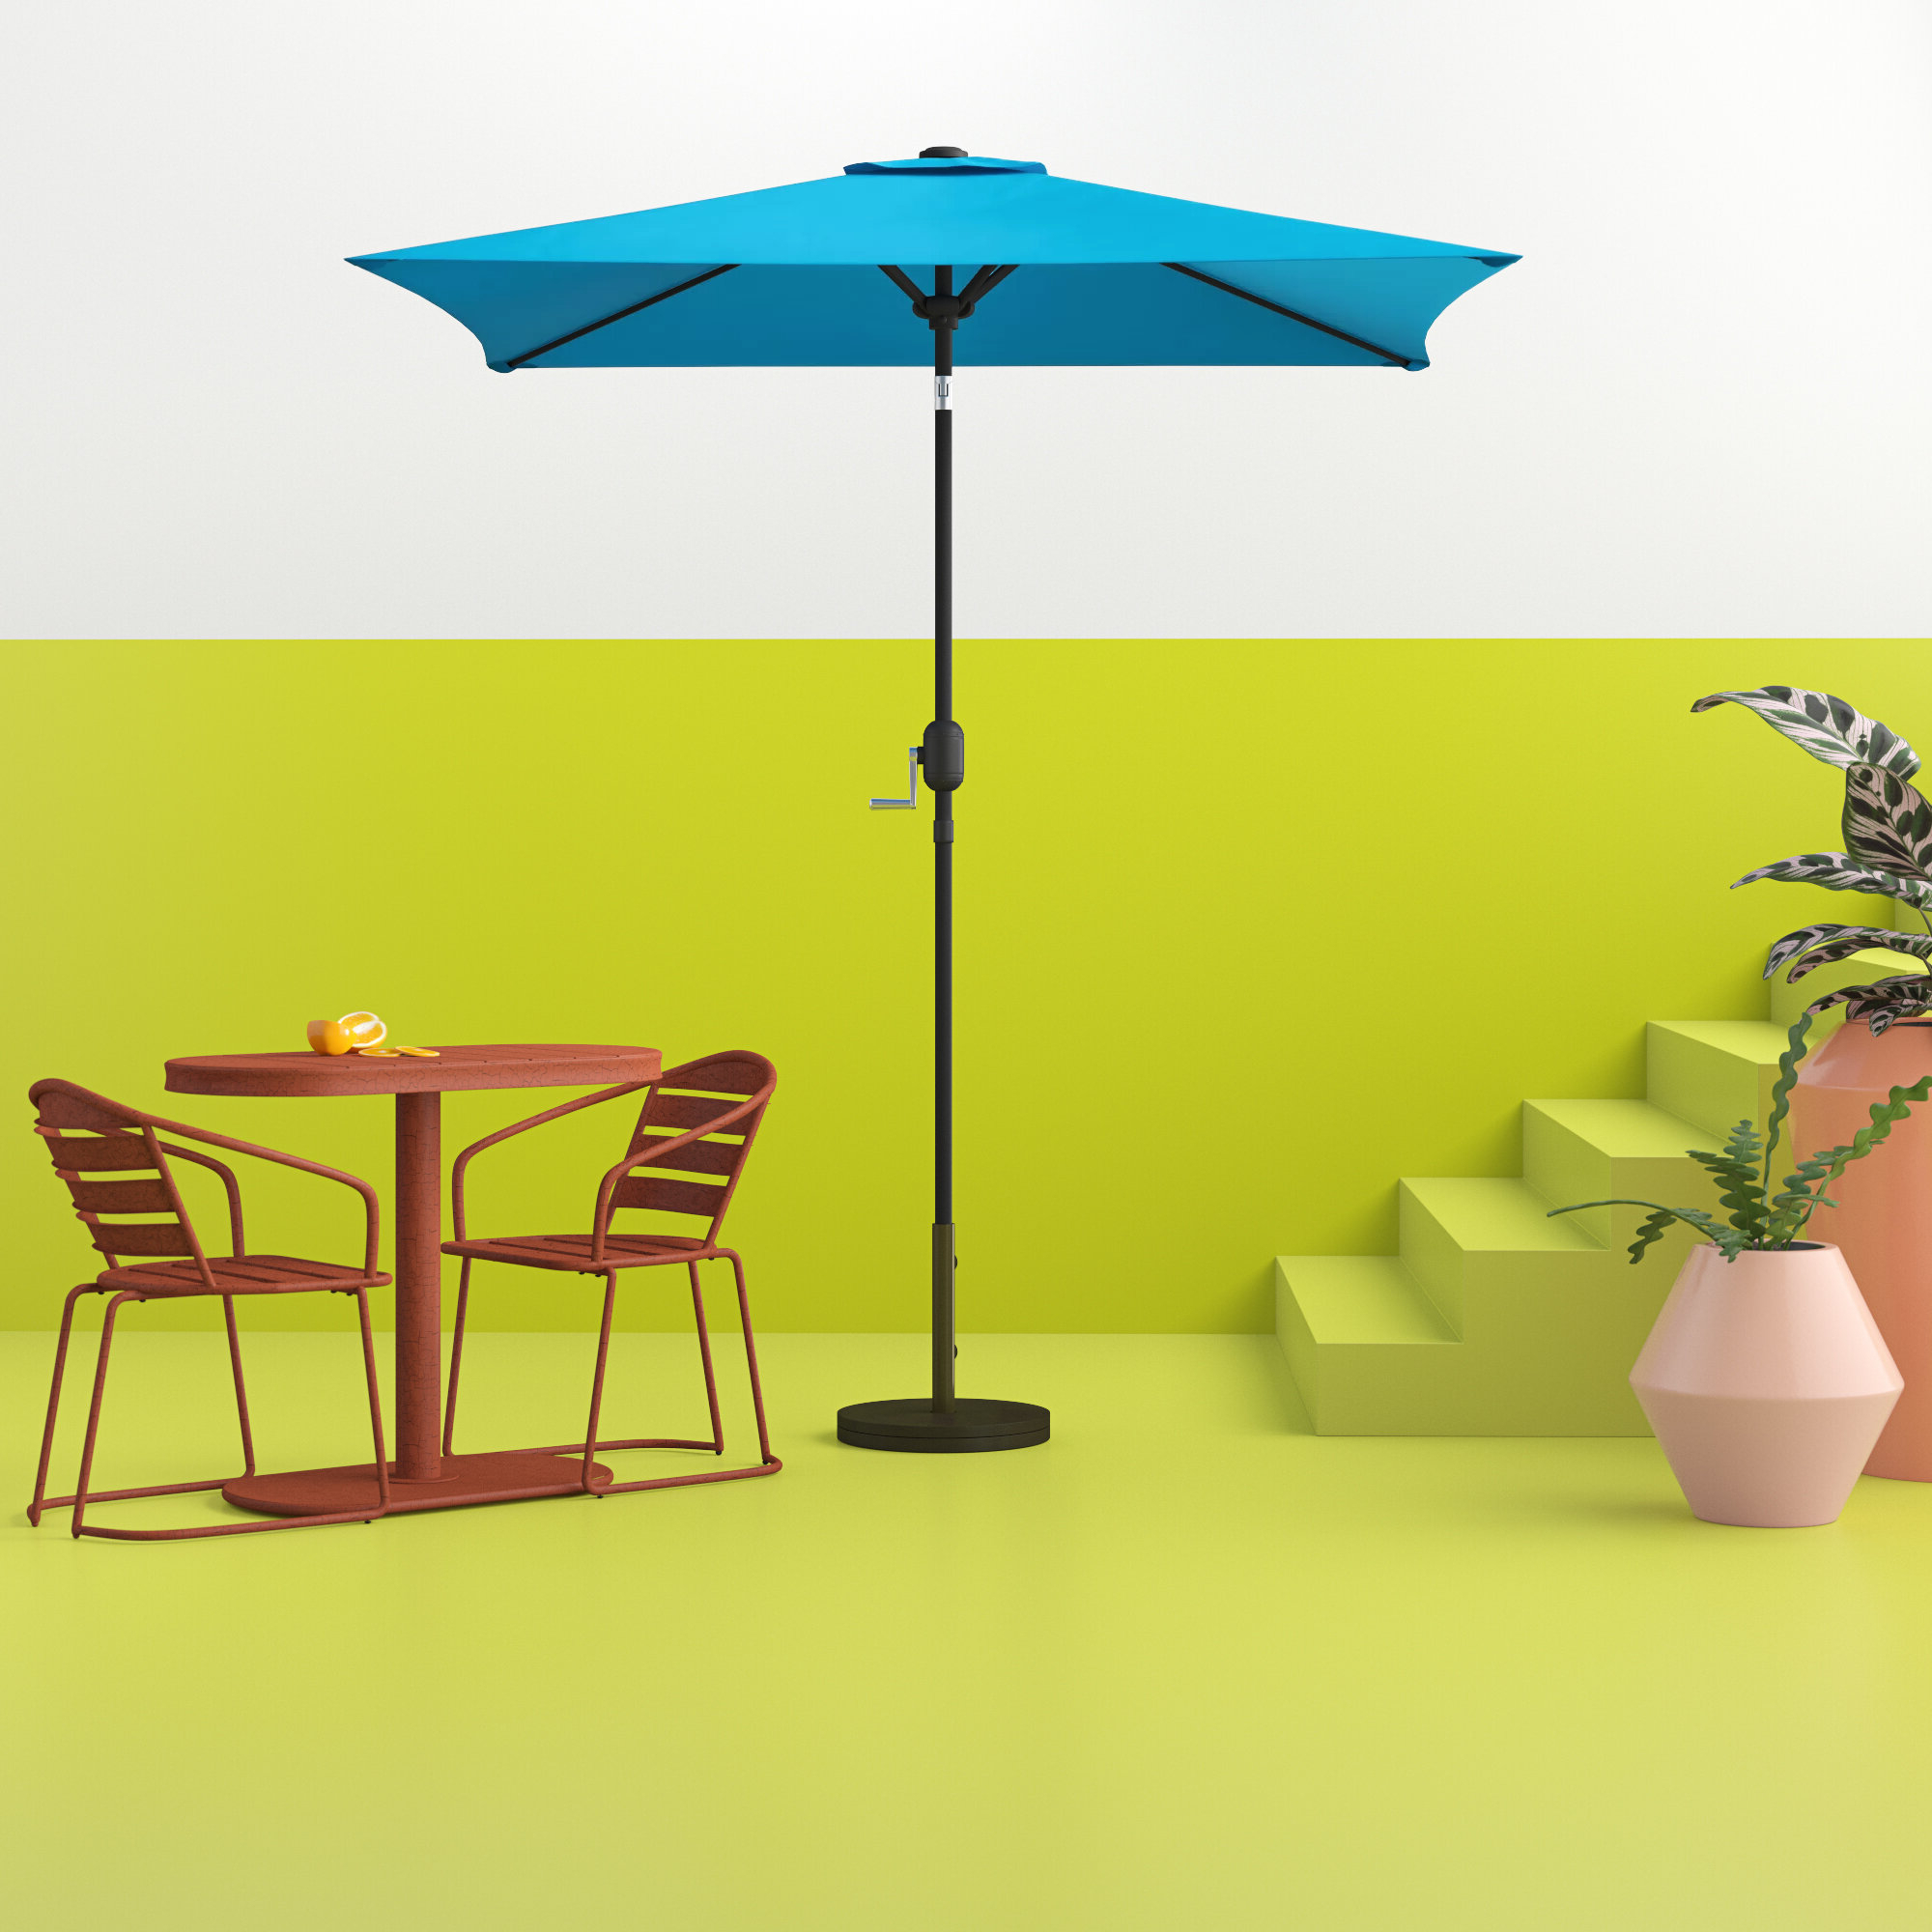 Best And Newest Bradford Patio Market Umbrellas With Bradford Patio 6.5' Square Market Umbrella (Gallery 2 of 20)